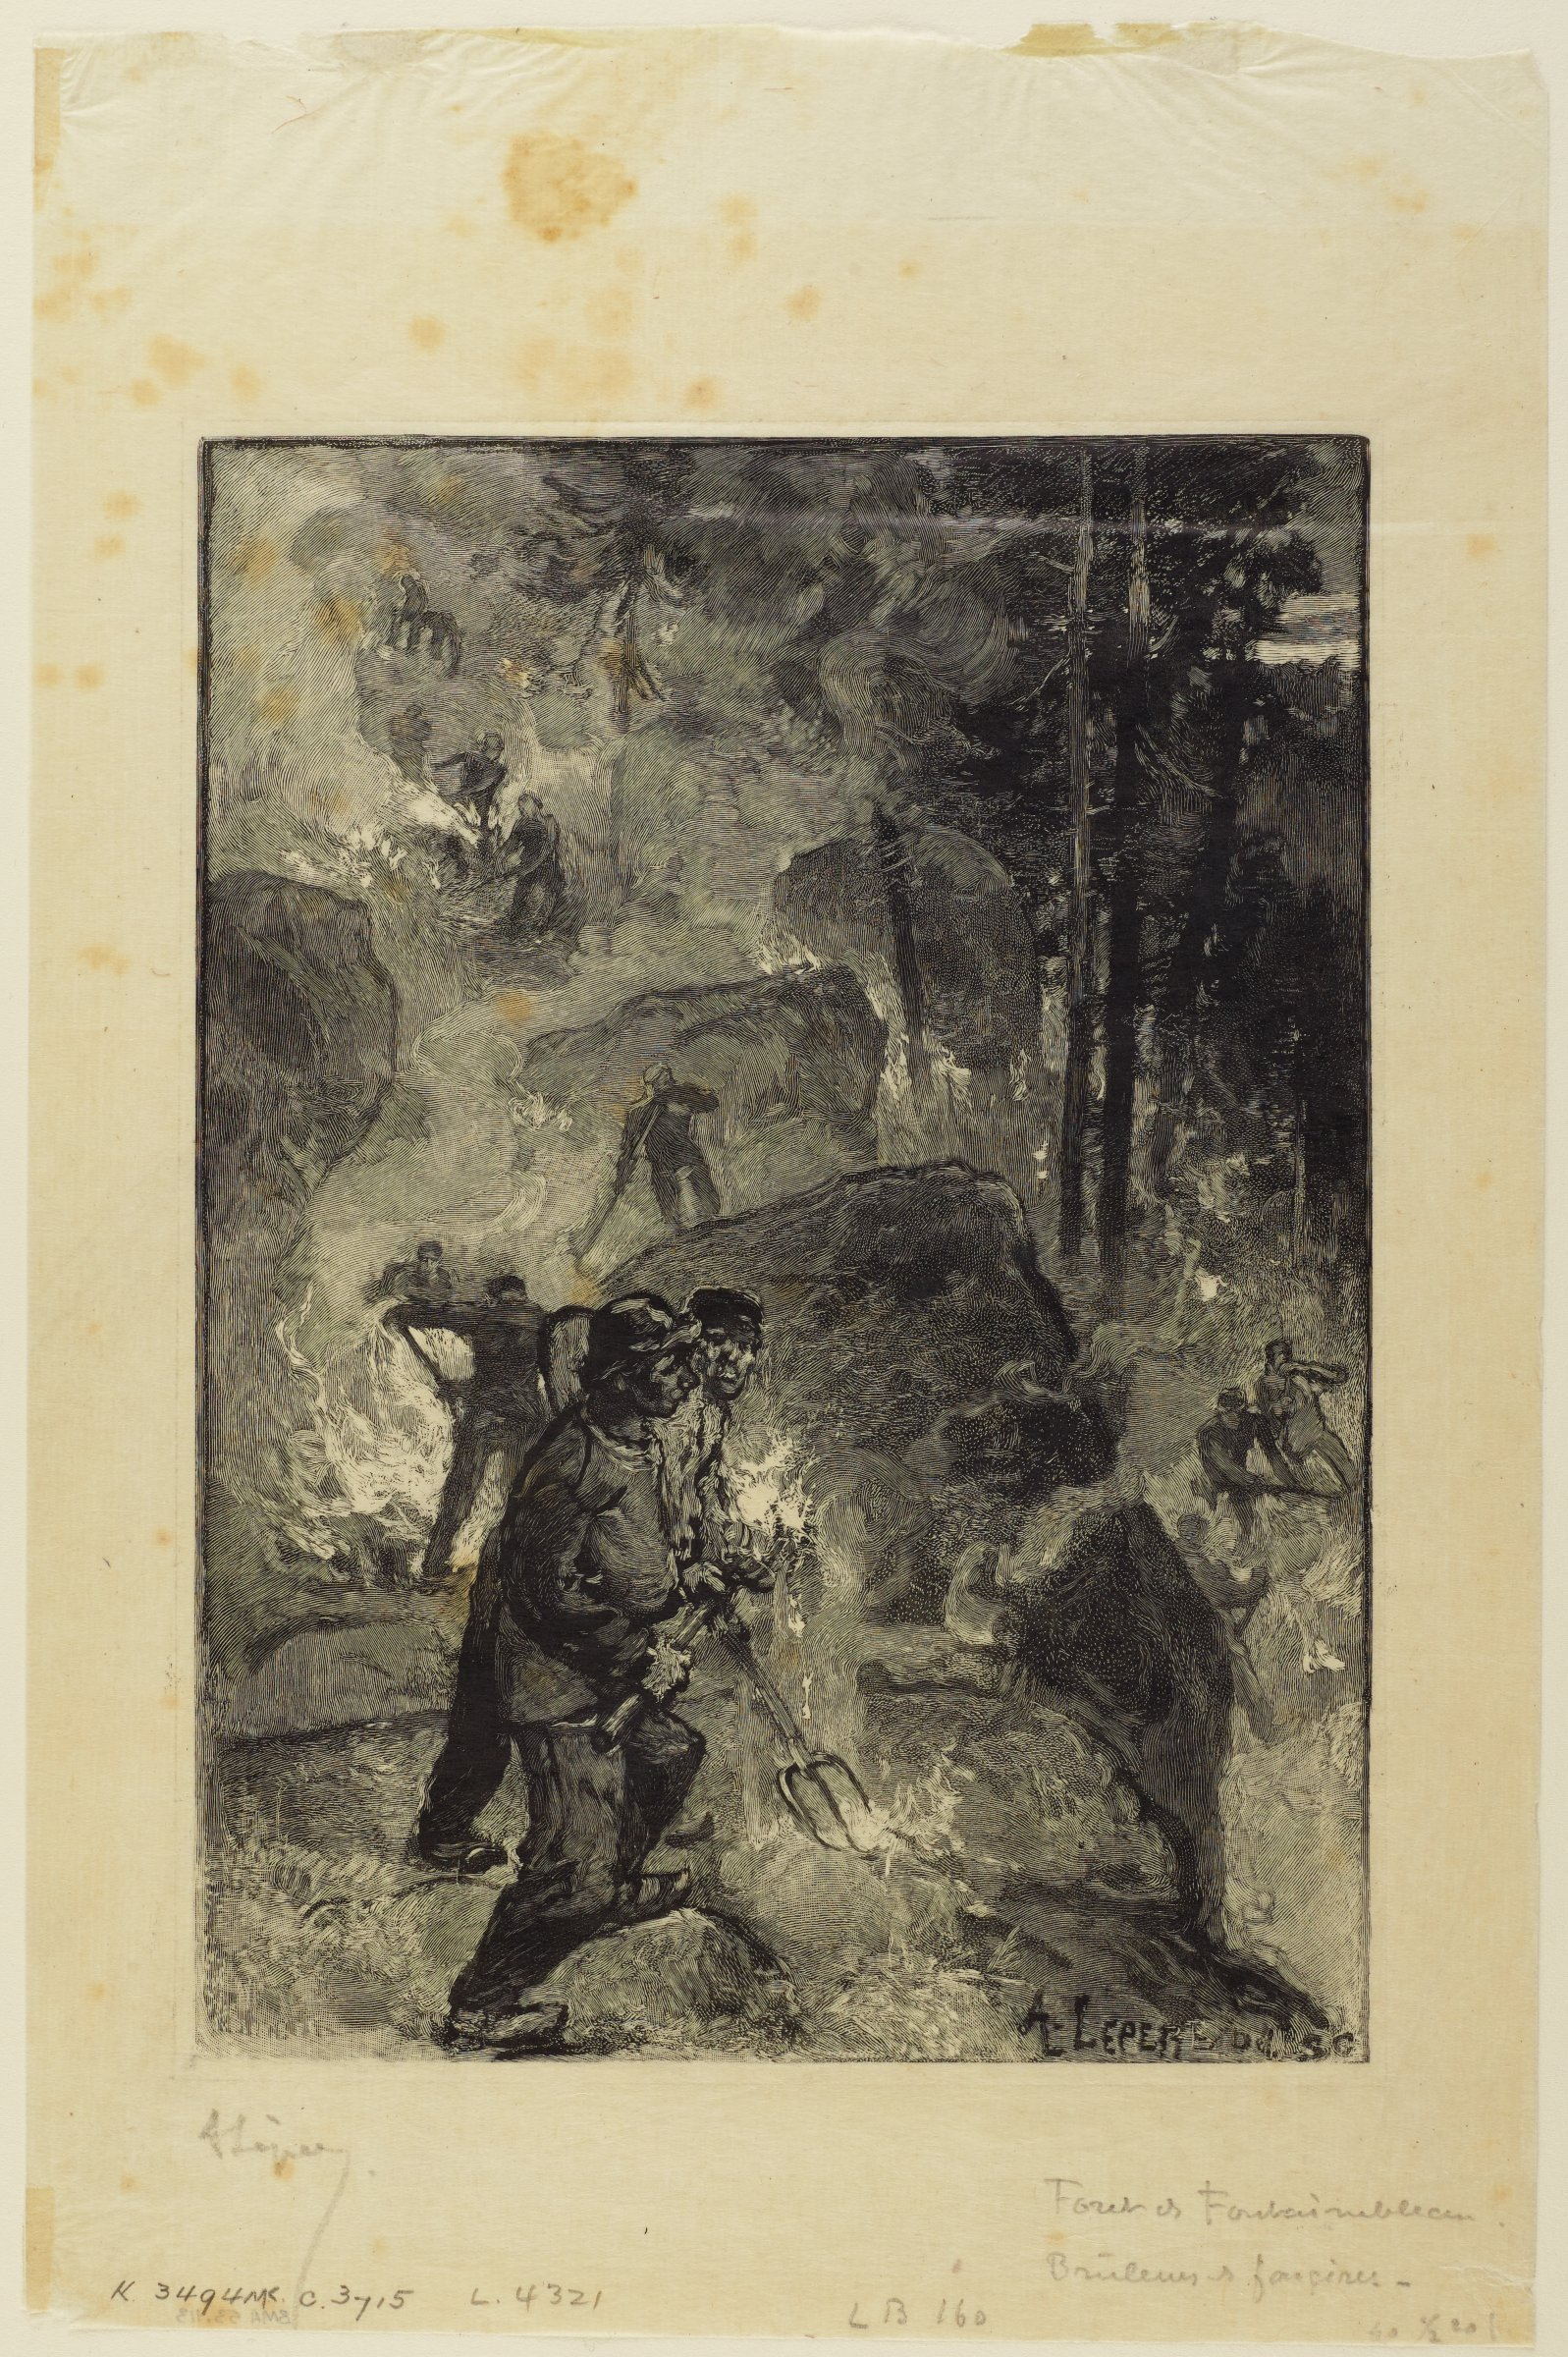 Multiple figures are scatterd throughout the composition working in a fiery environment. Two figures in the foreground are depicted with the greatest facial detail.